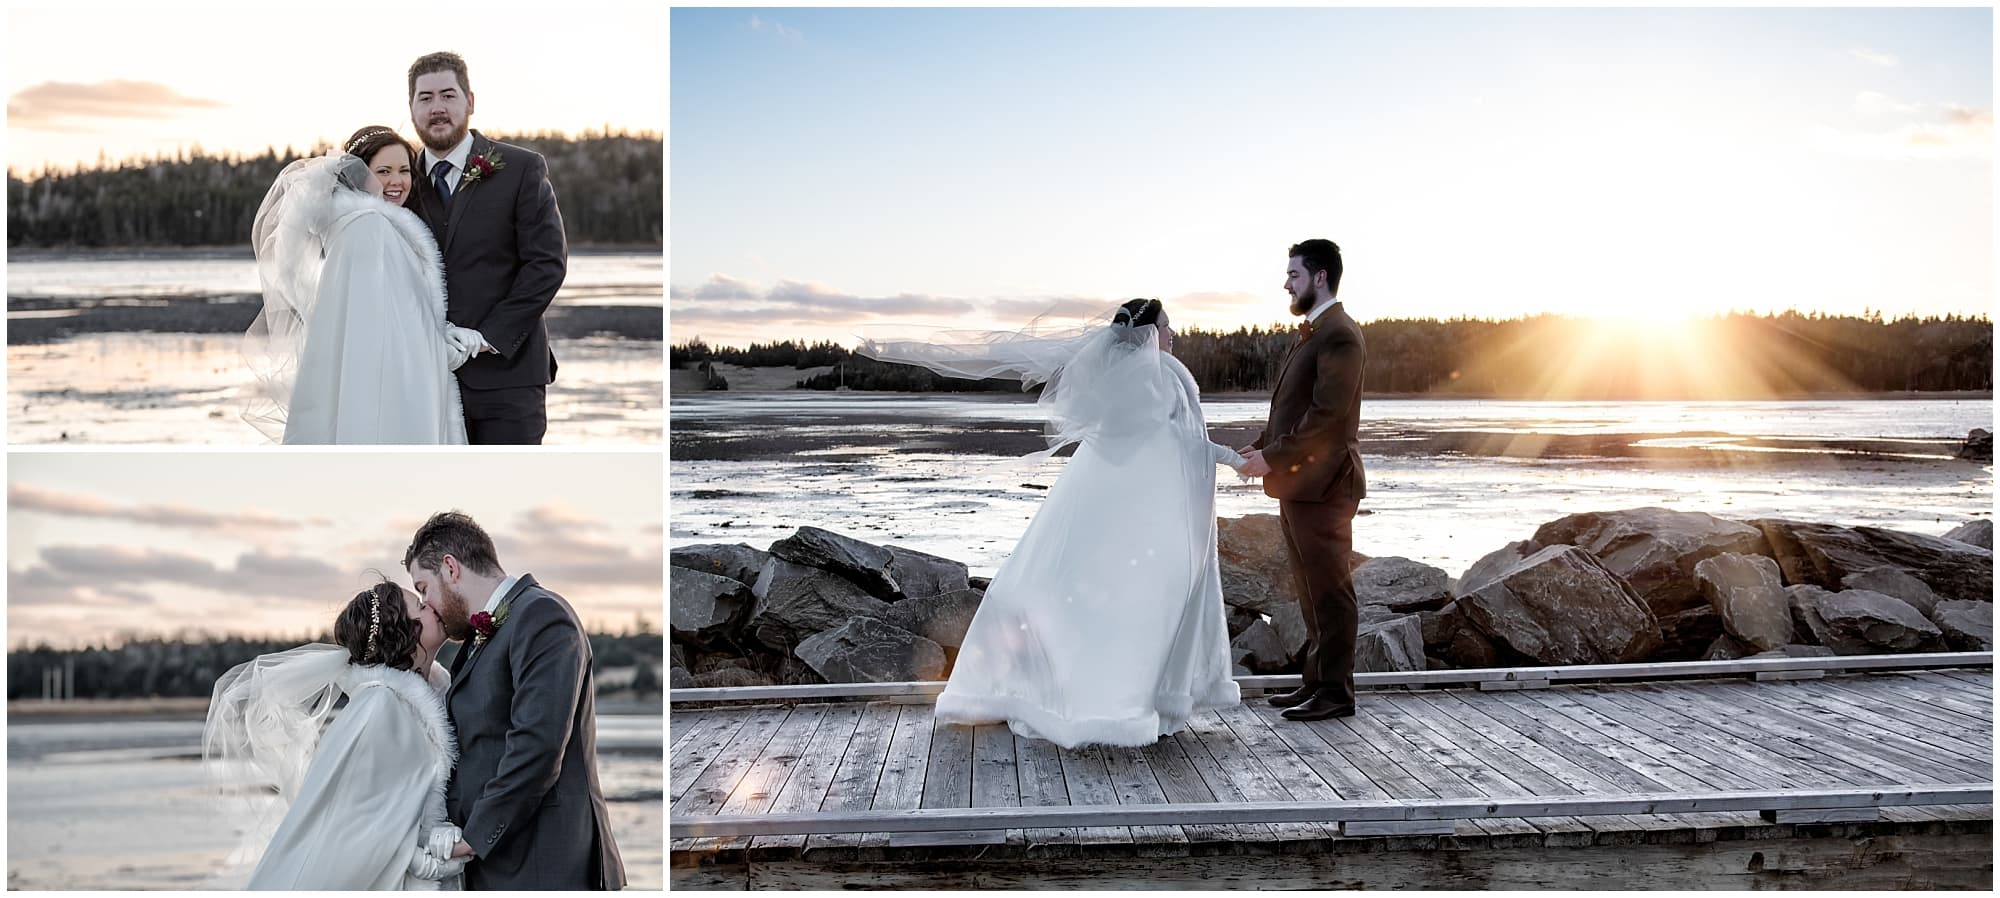 The bride and groom pose for wedding photos at sunset on the ocean boardwalk at Fisherman's Cove in Eastern Passage, NS.